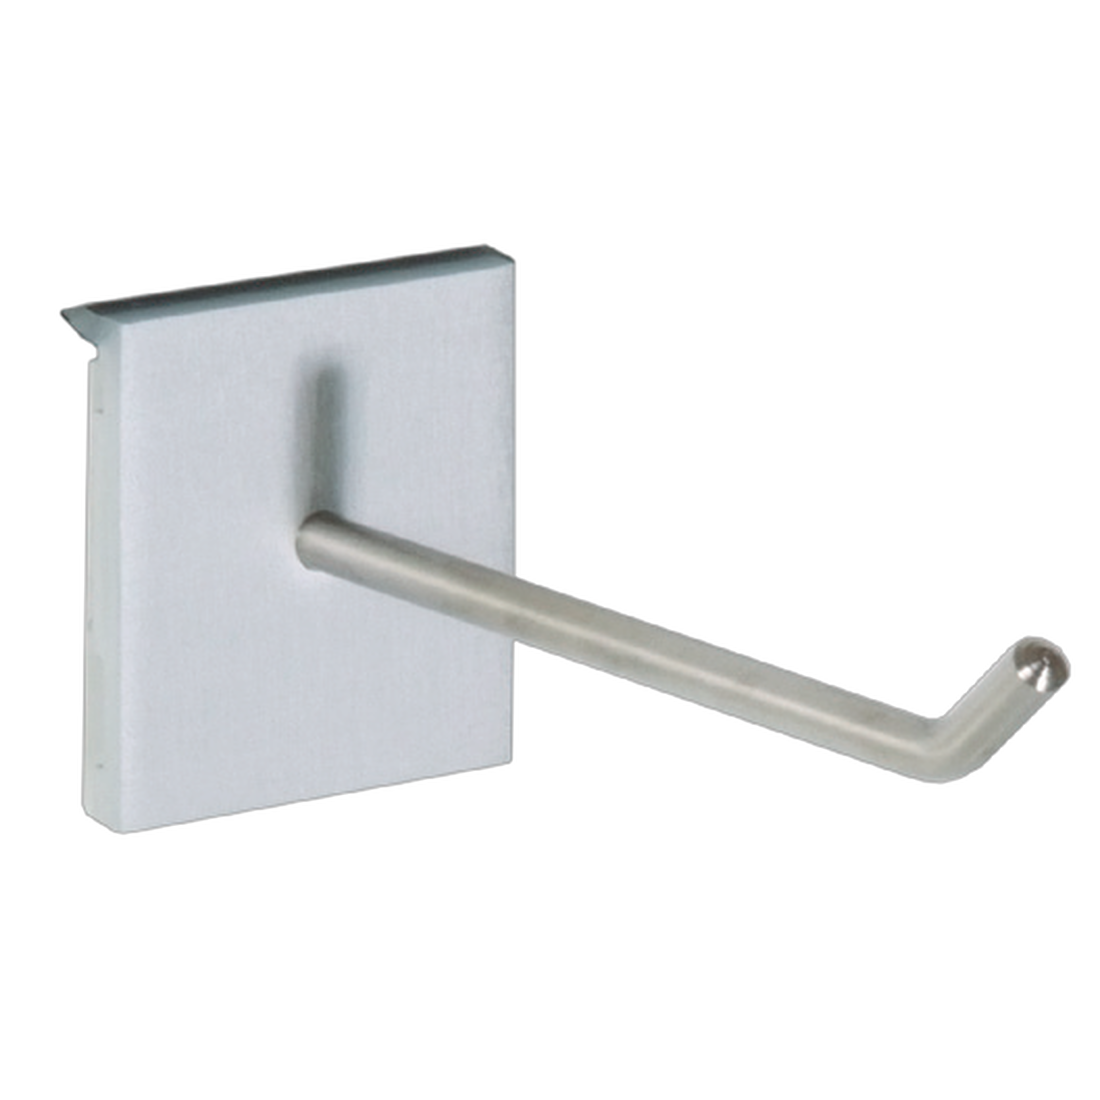 BLISTER PACKAGE SUPPORT I 220MM